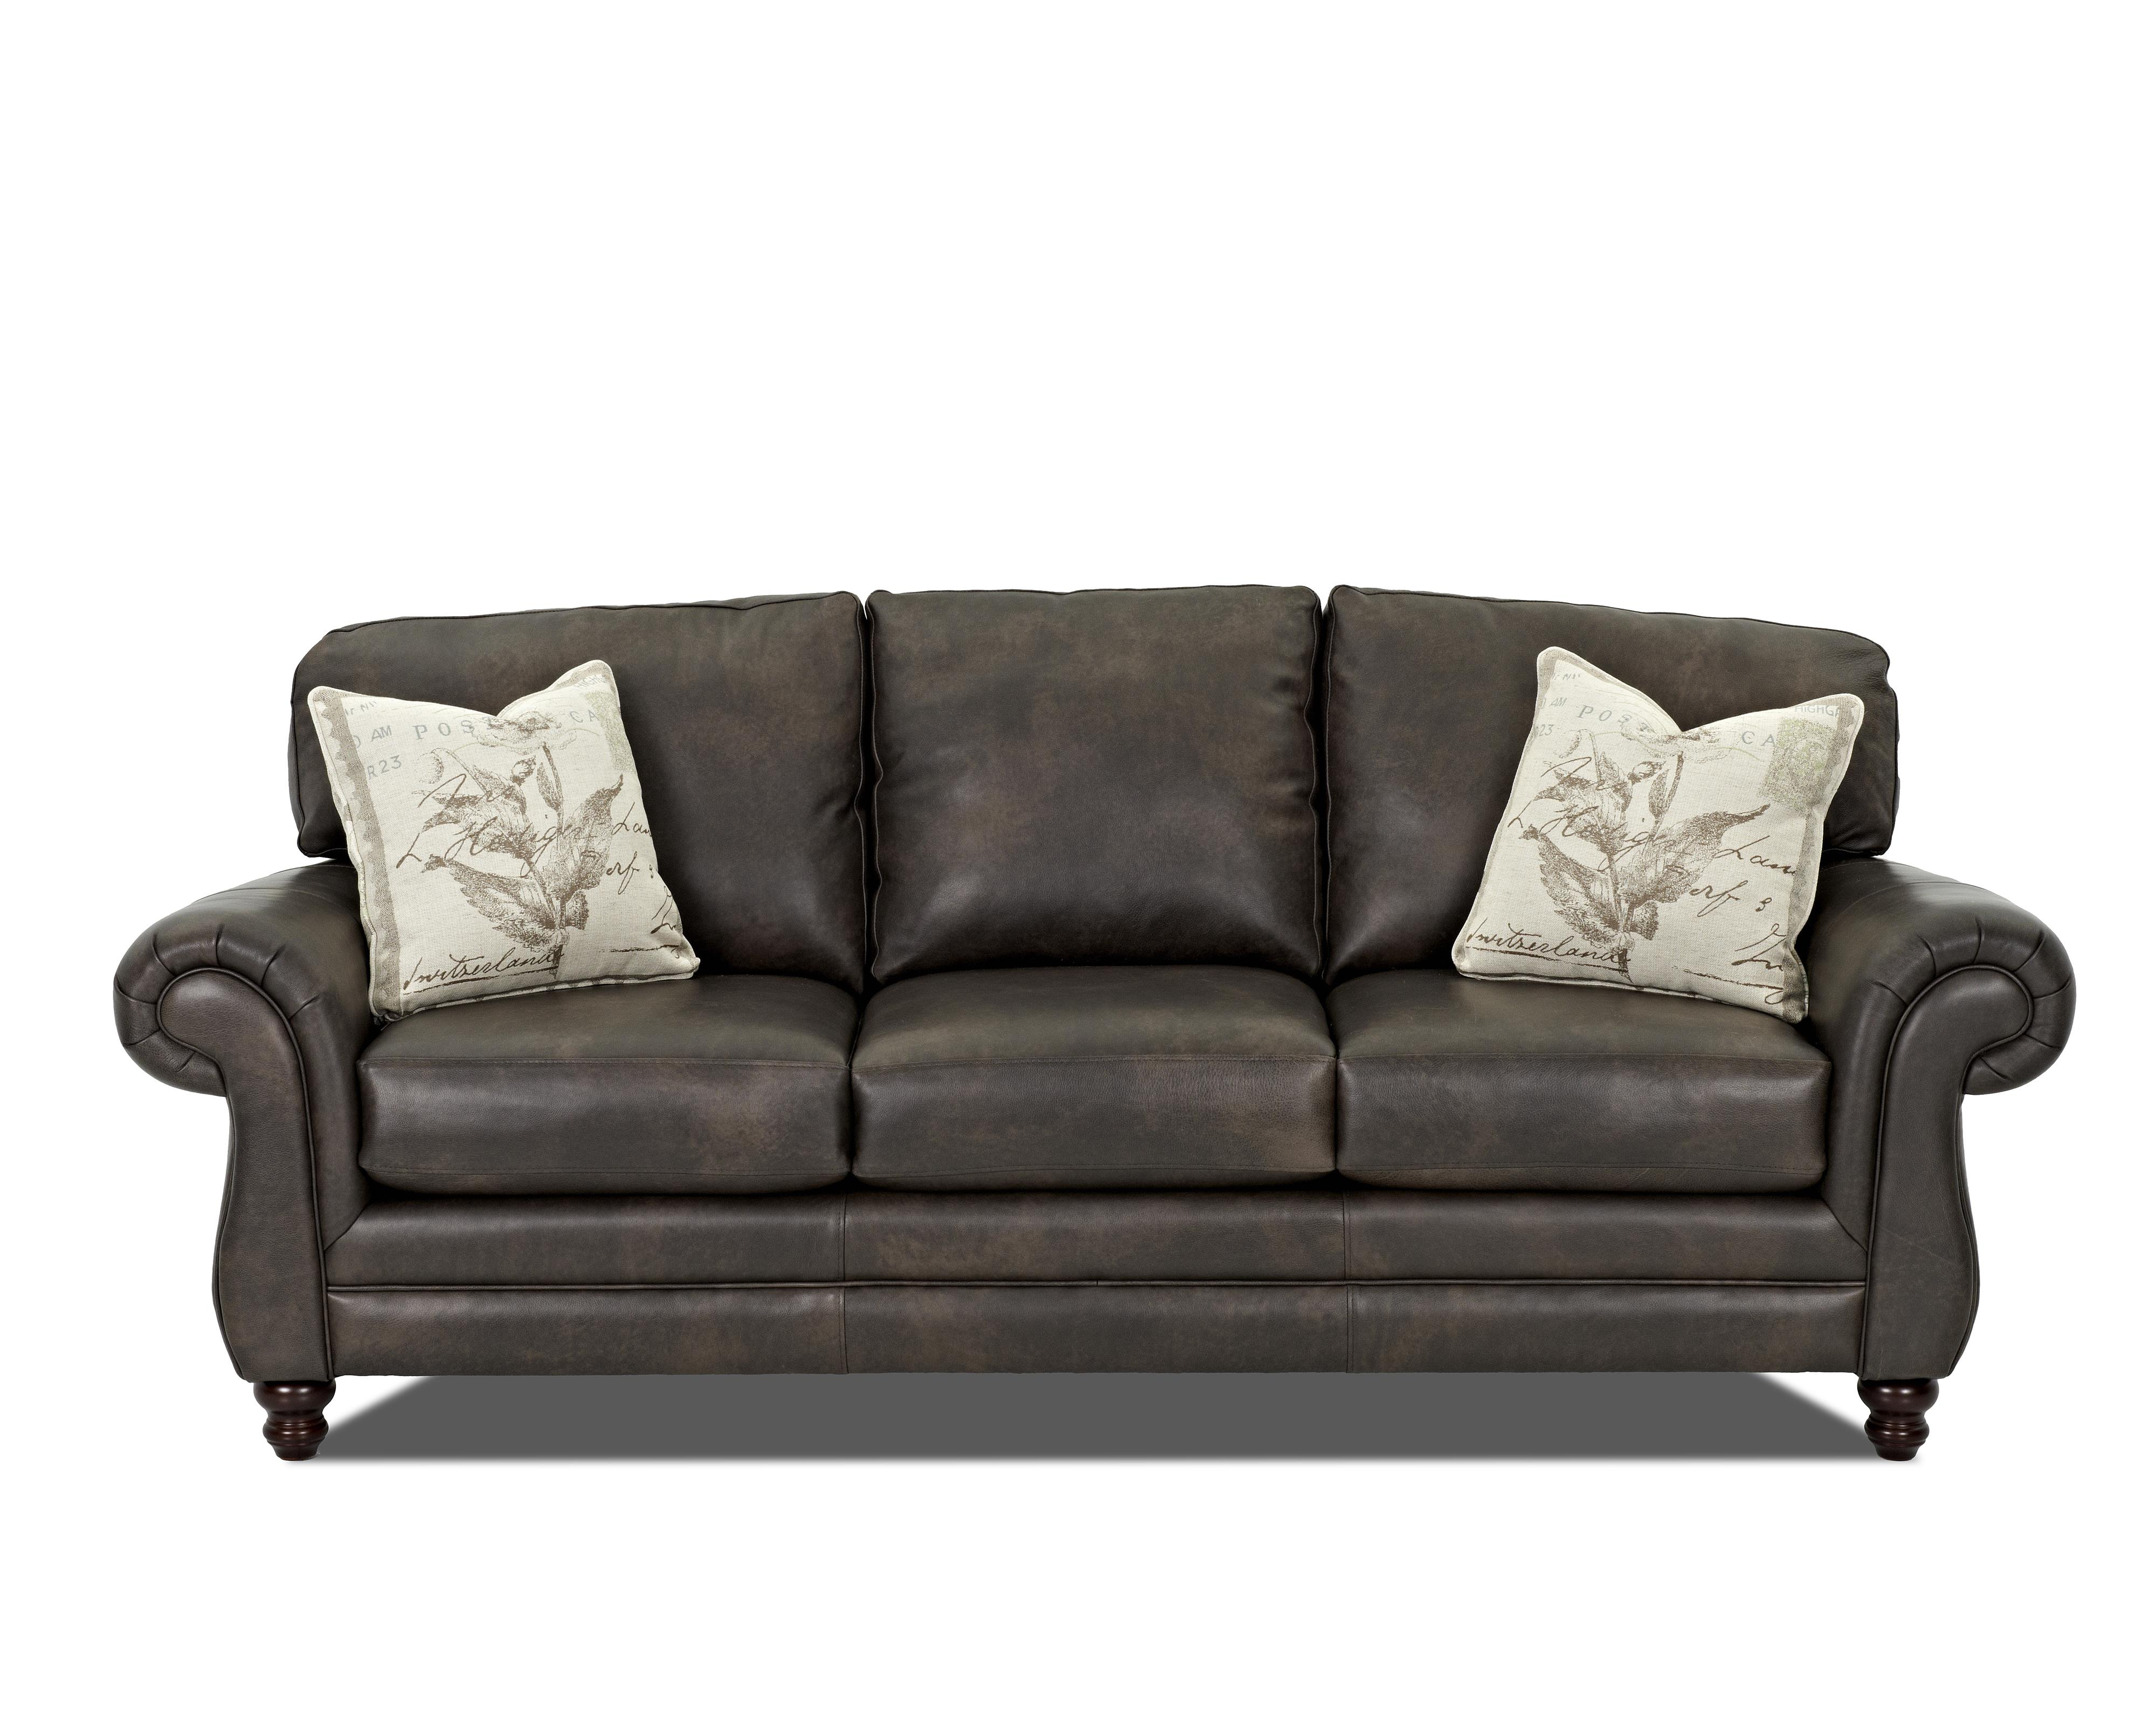 Klaussner Leather Sofas Klaussner Leather Sofa Sofas For In Ma Nh Ri Jordan S Thesofa